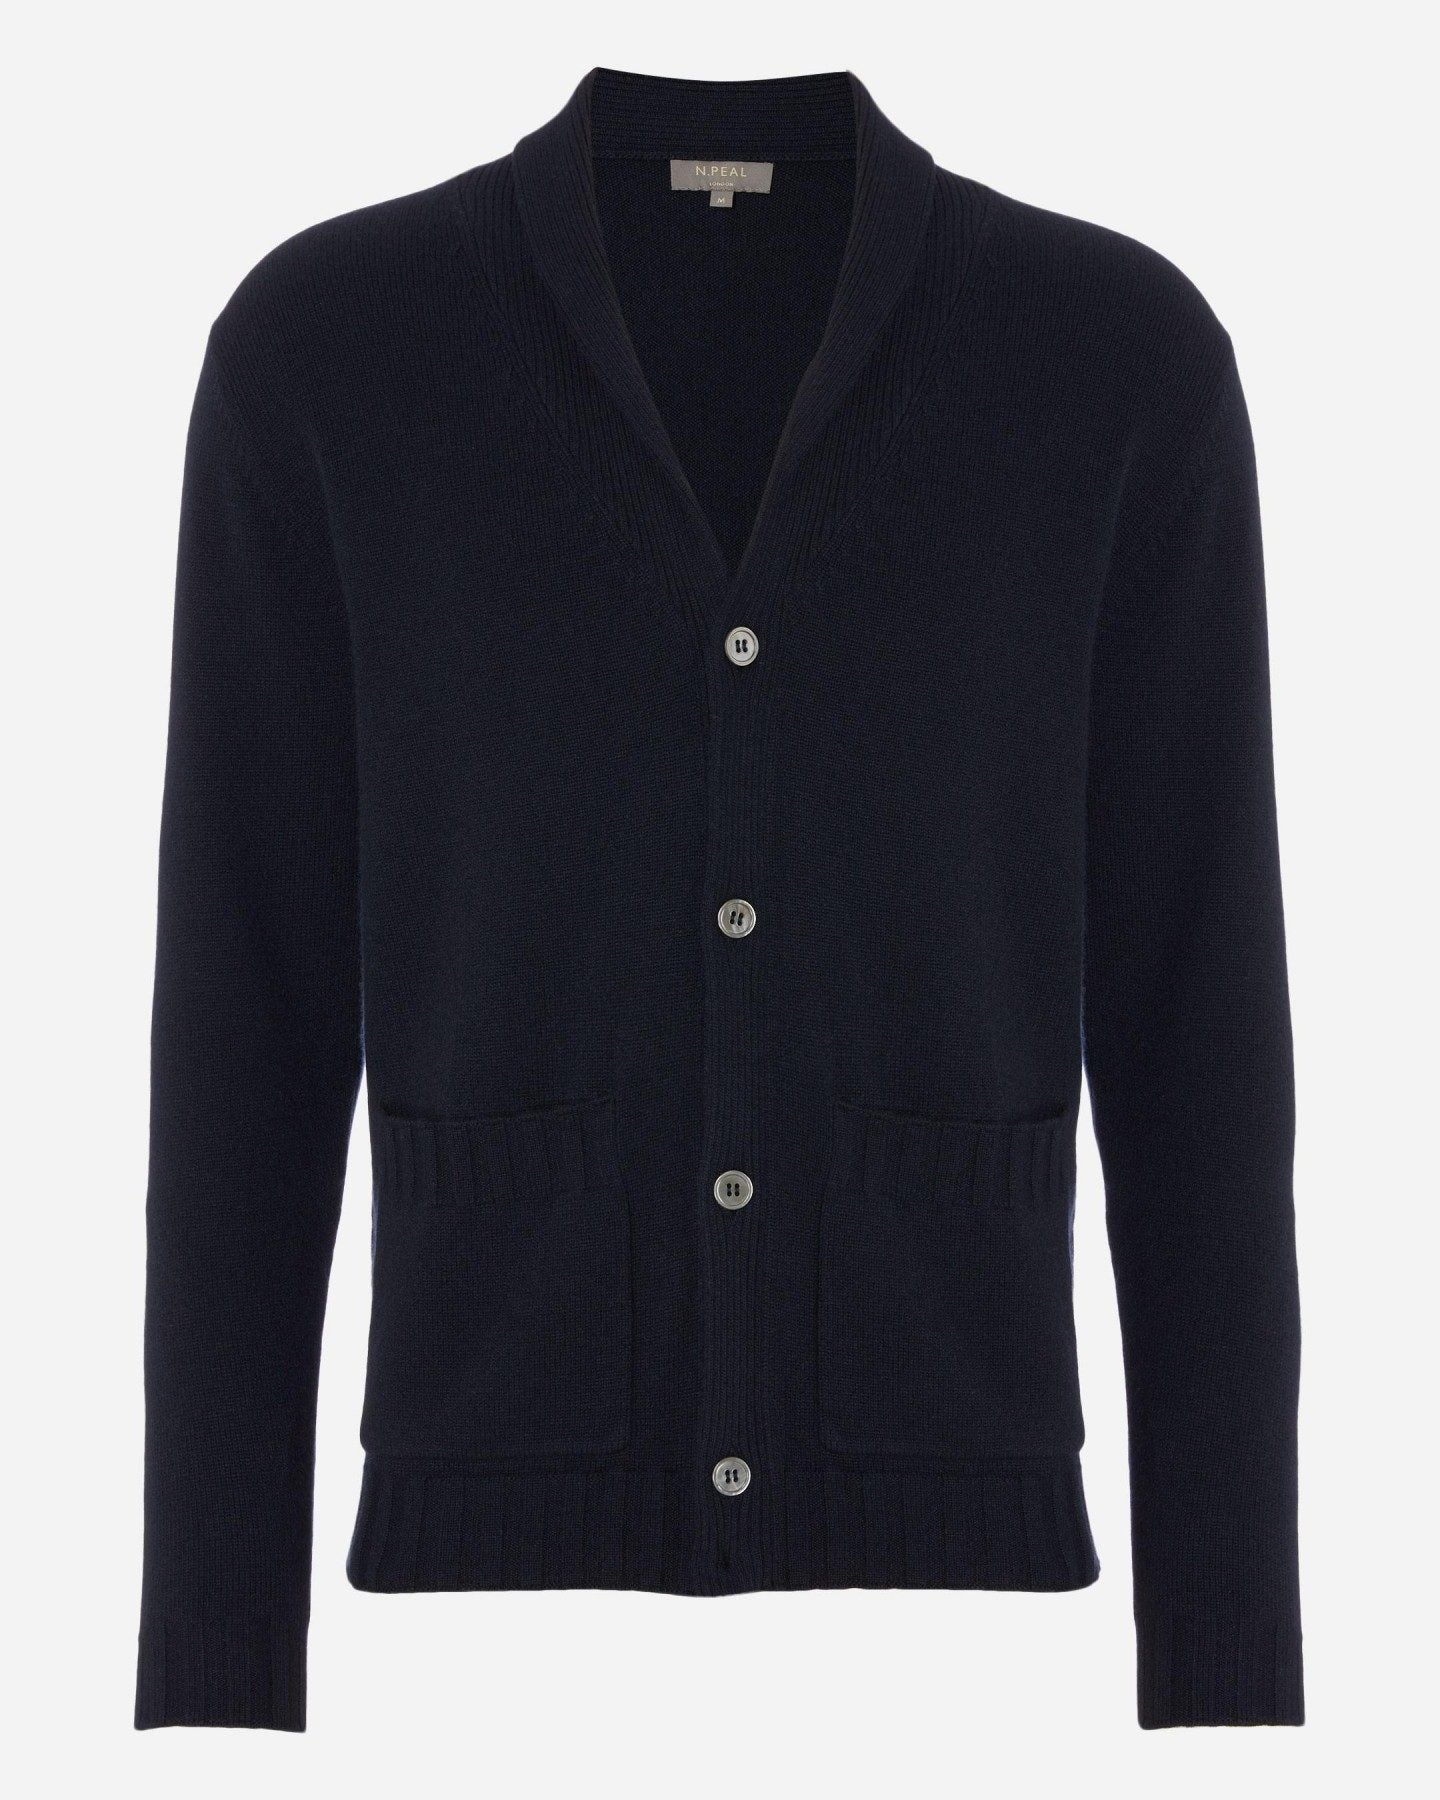 Turnback Collar Cashmere Cardigan Navy Blue 2